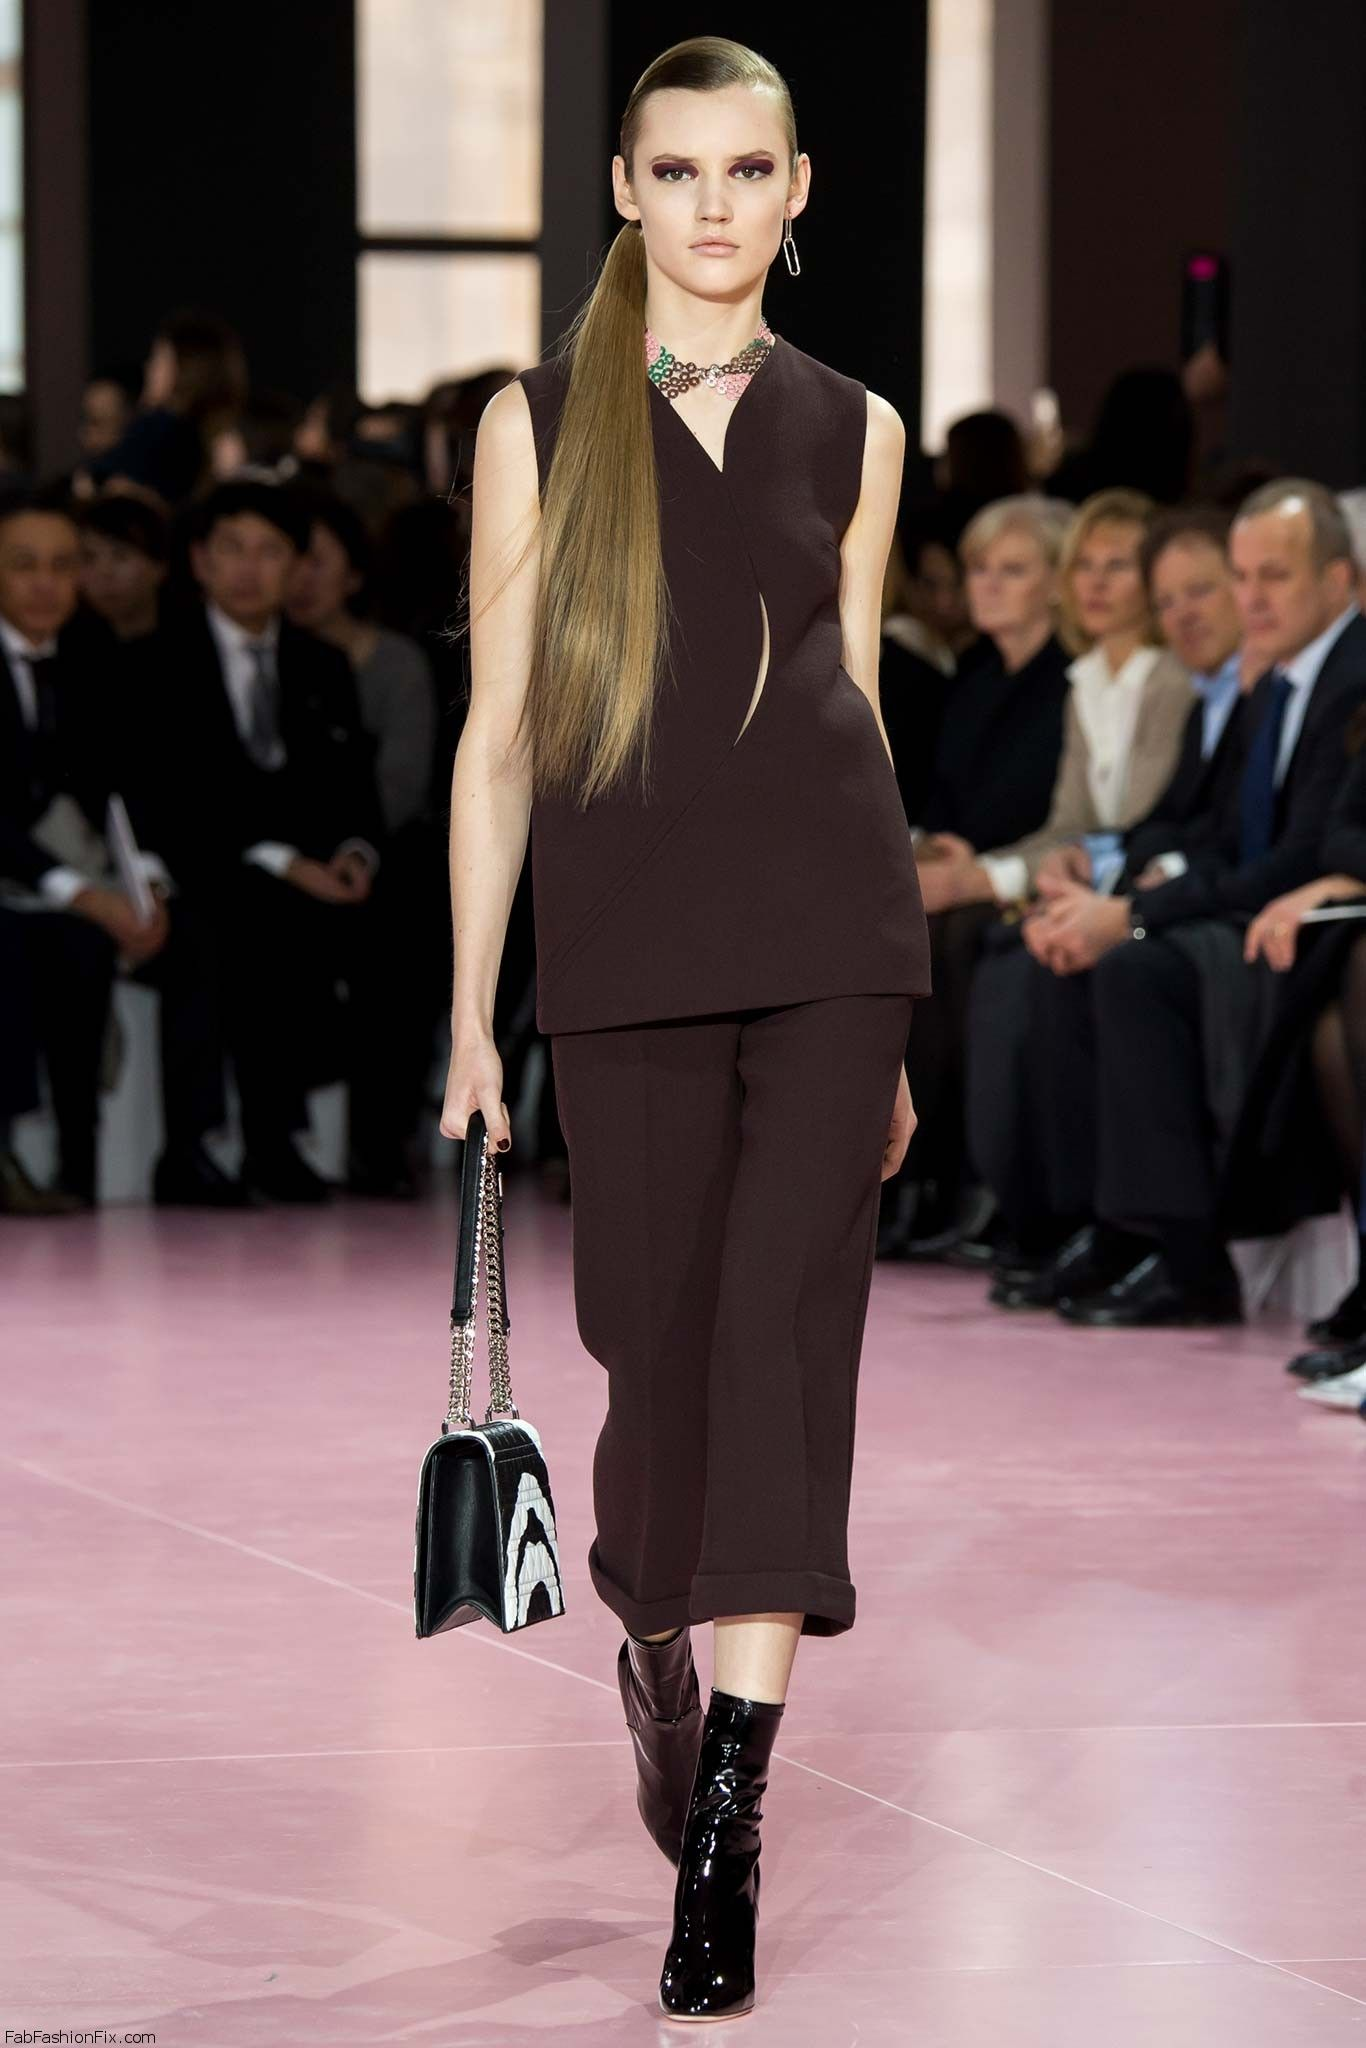 Christian Dior Fall Winter 2015 Collection Paris Fashion